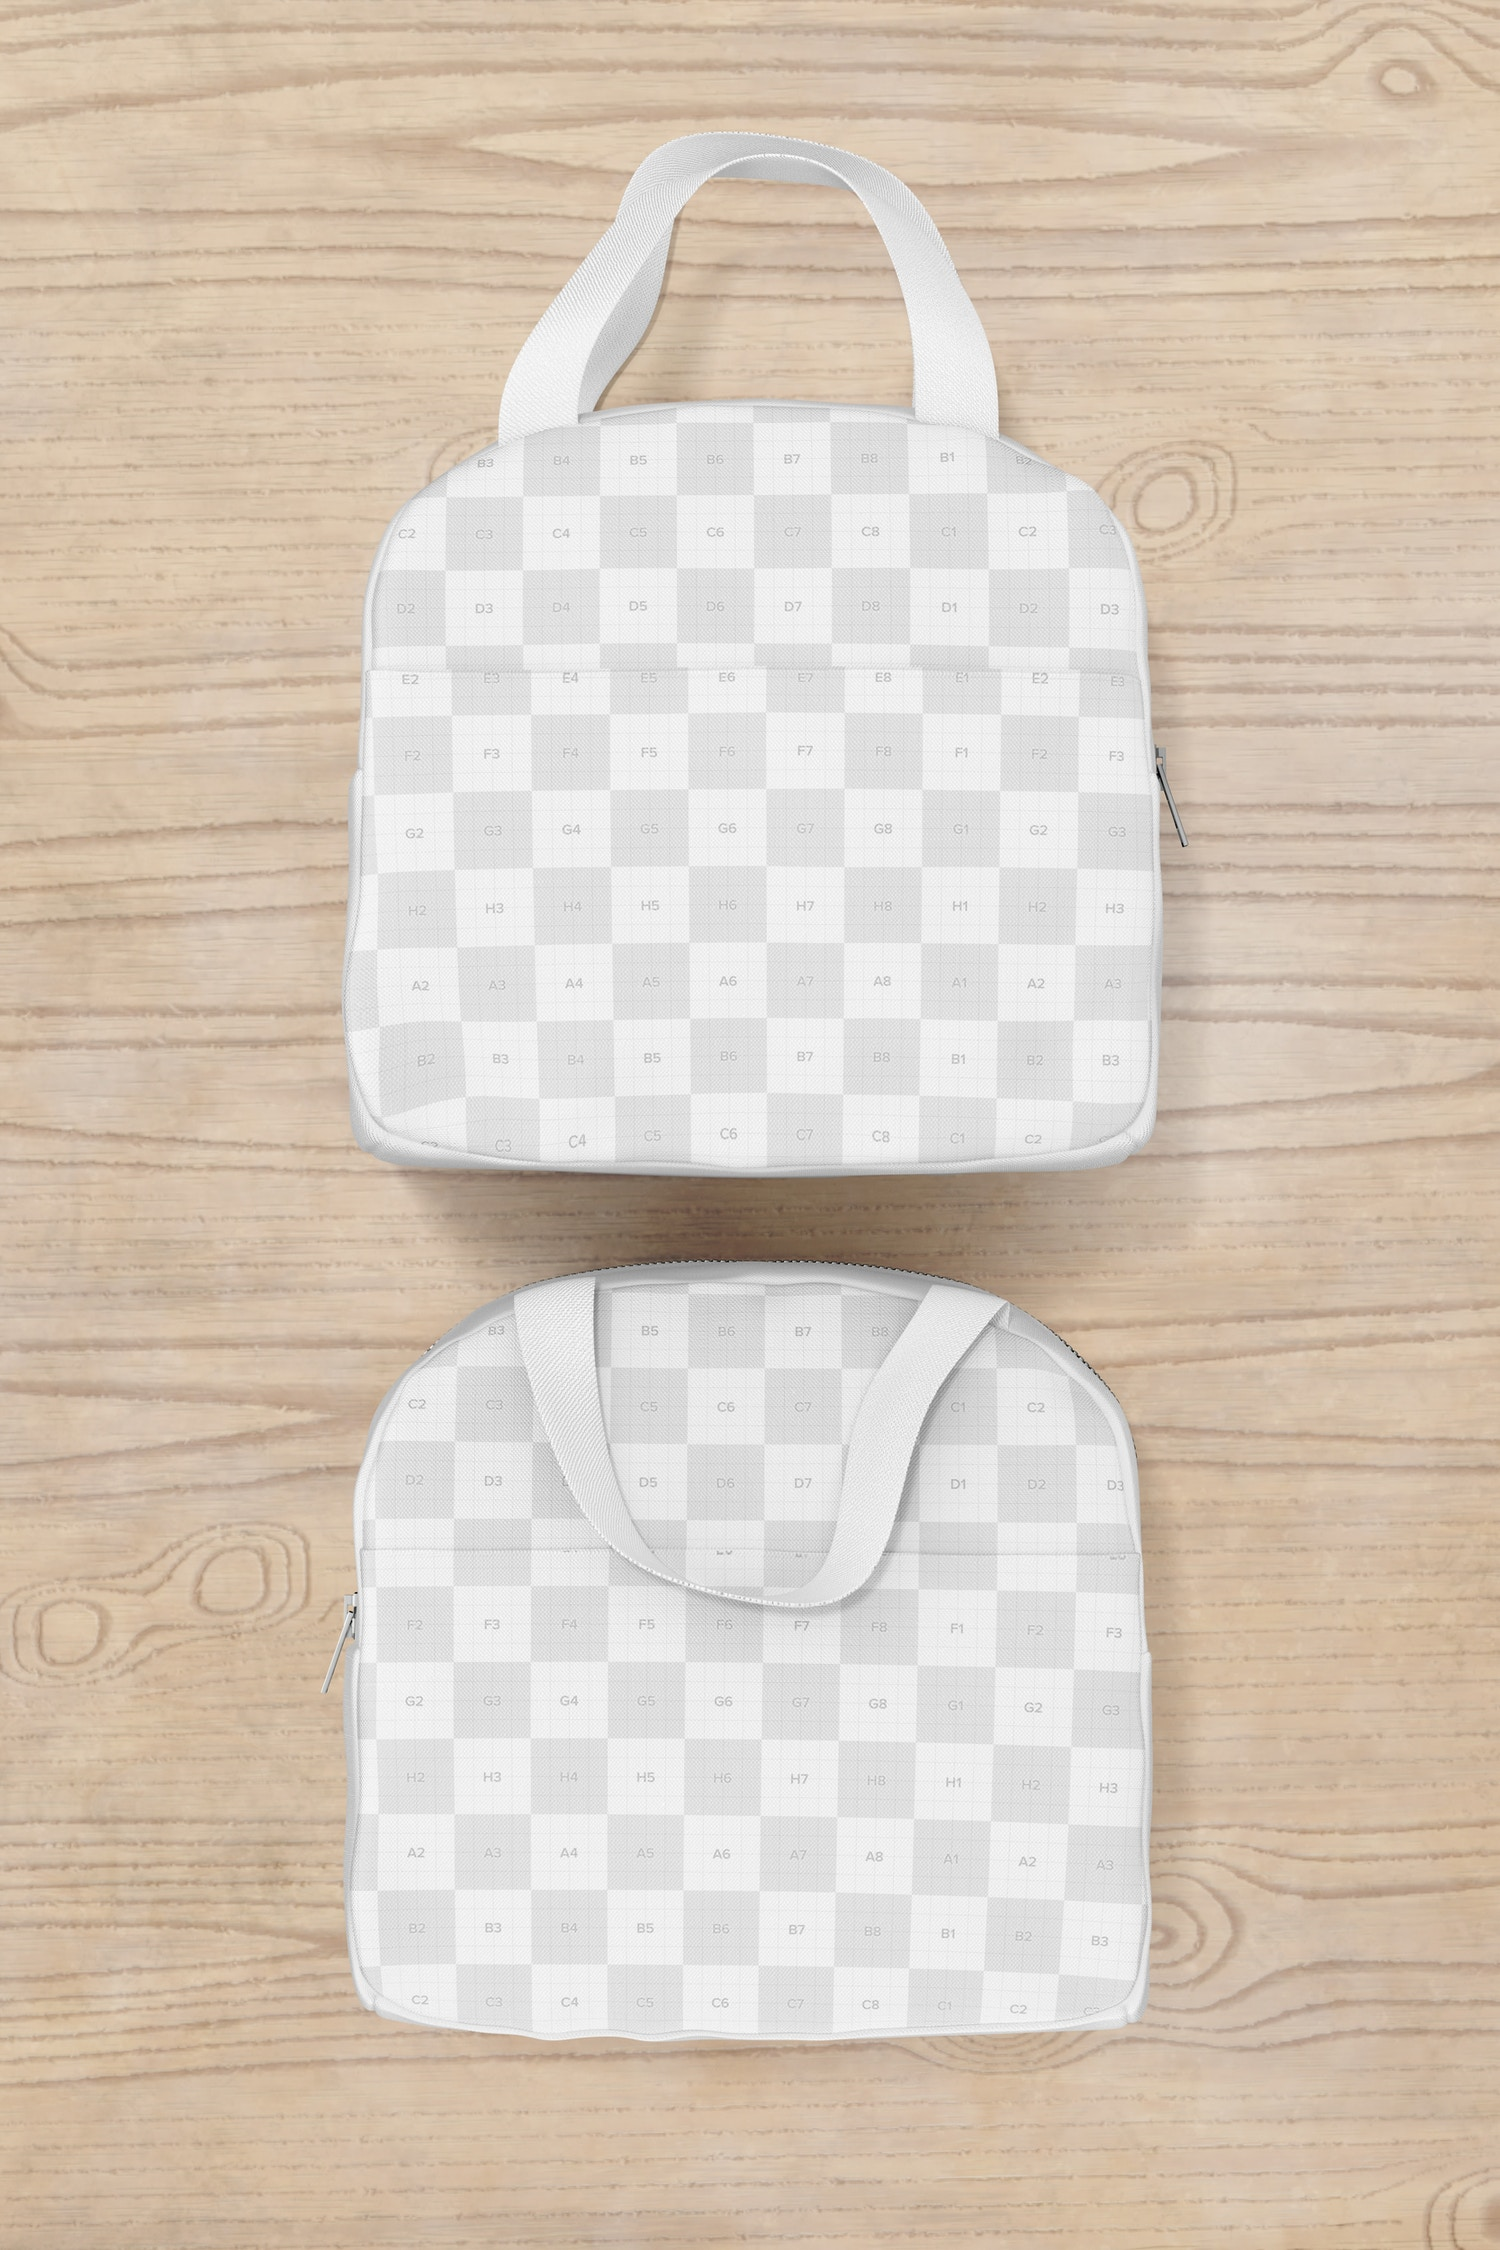 Lunch Bag with Front Pocket Mockup, Top View